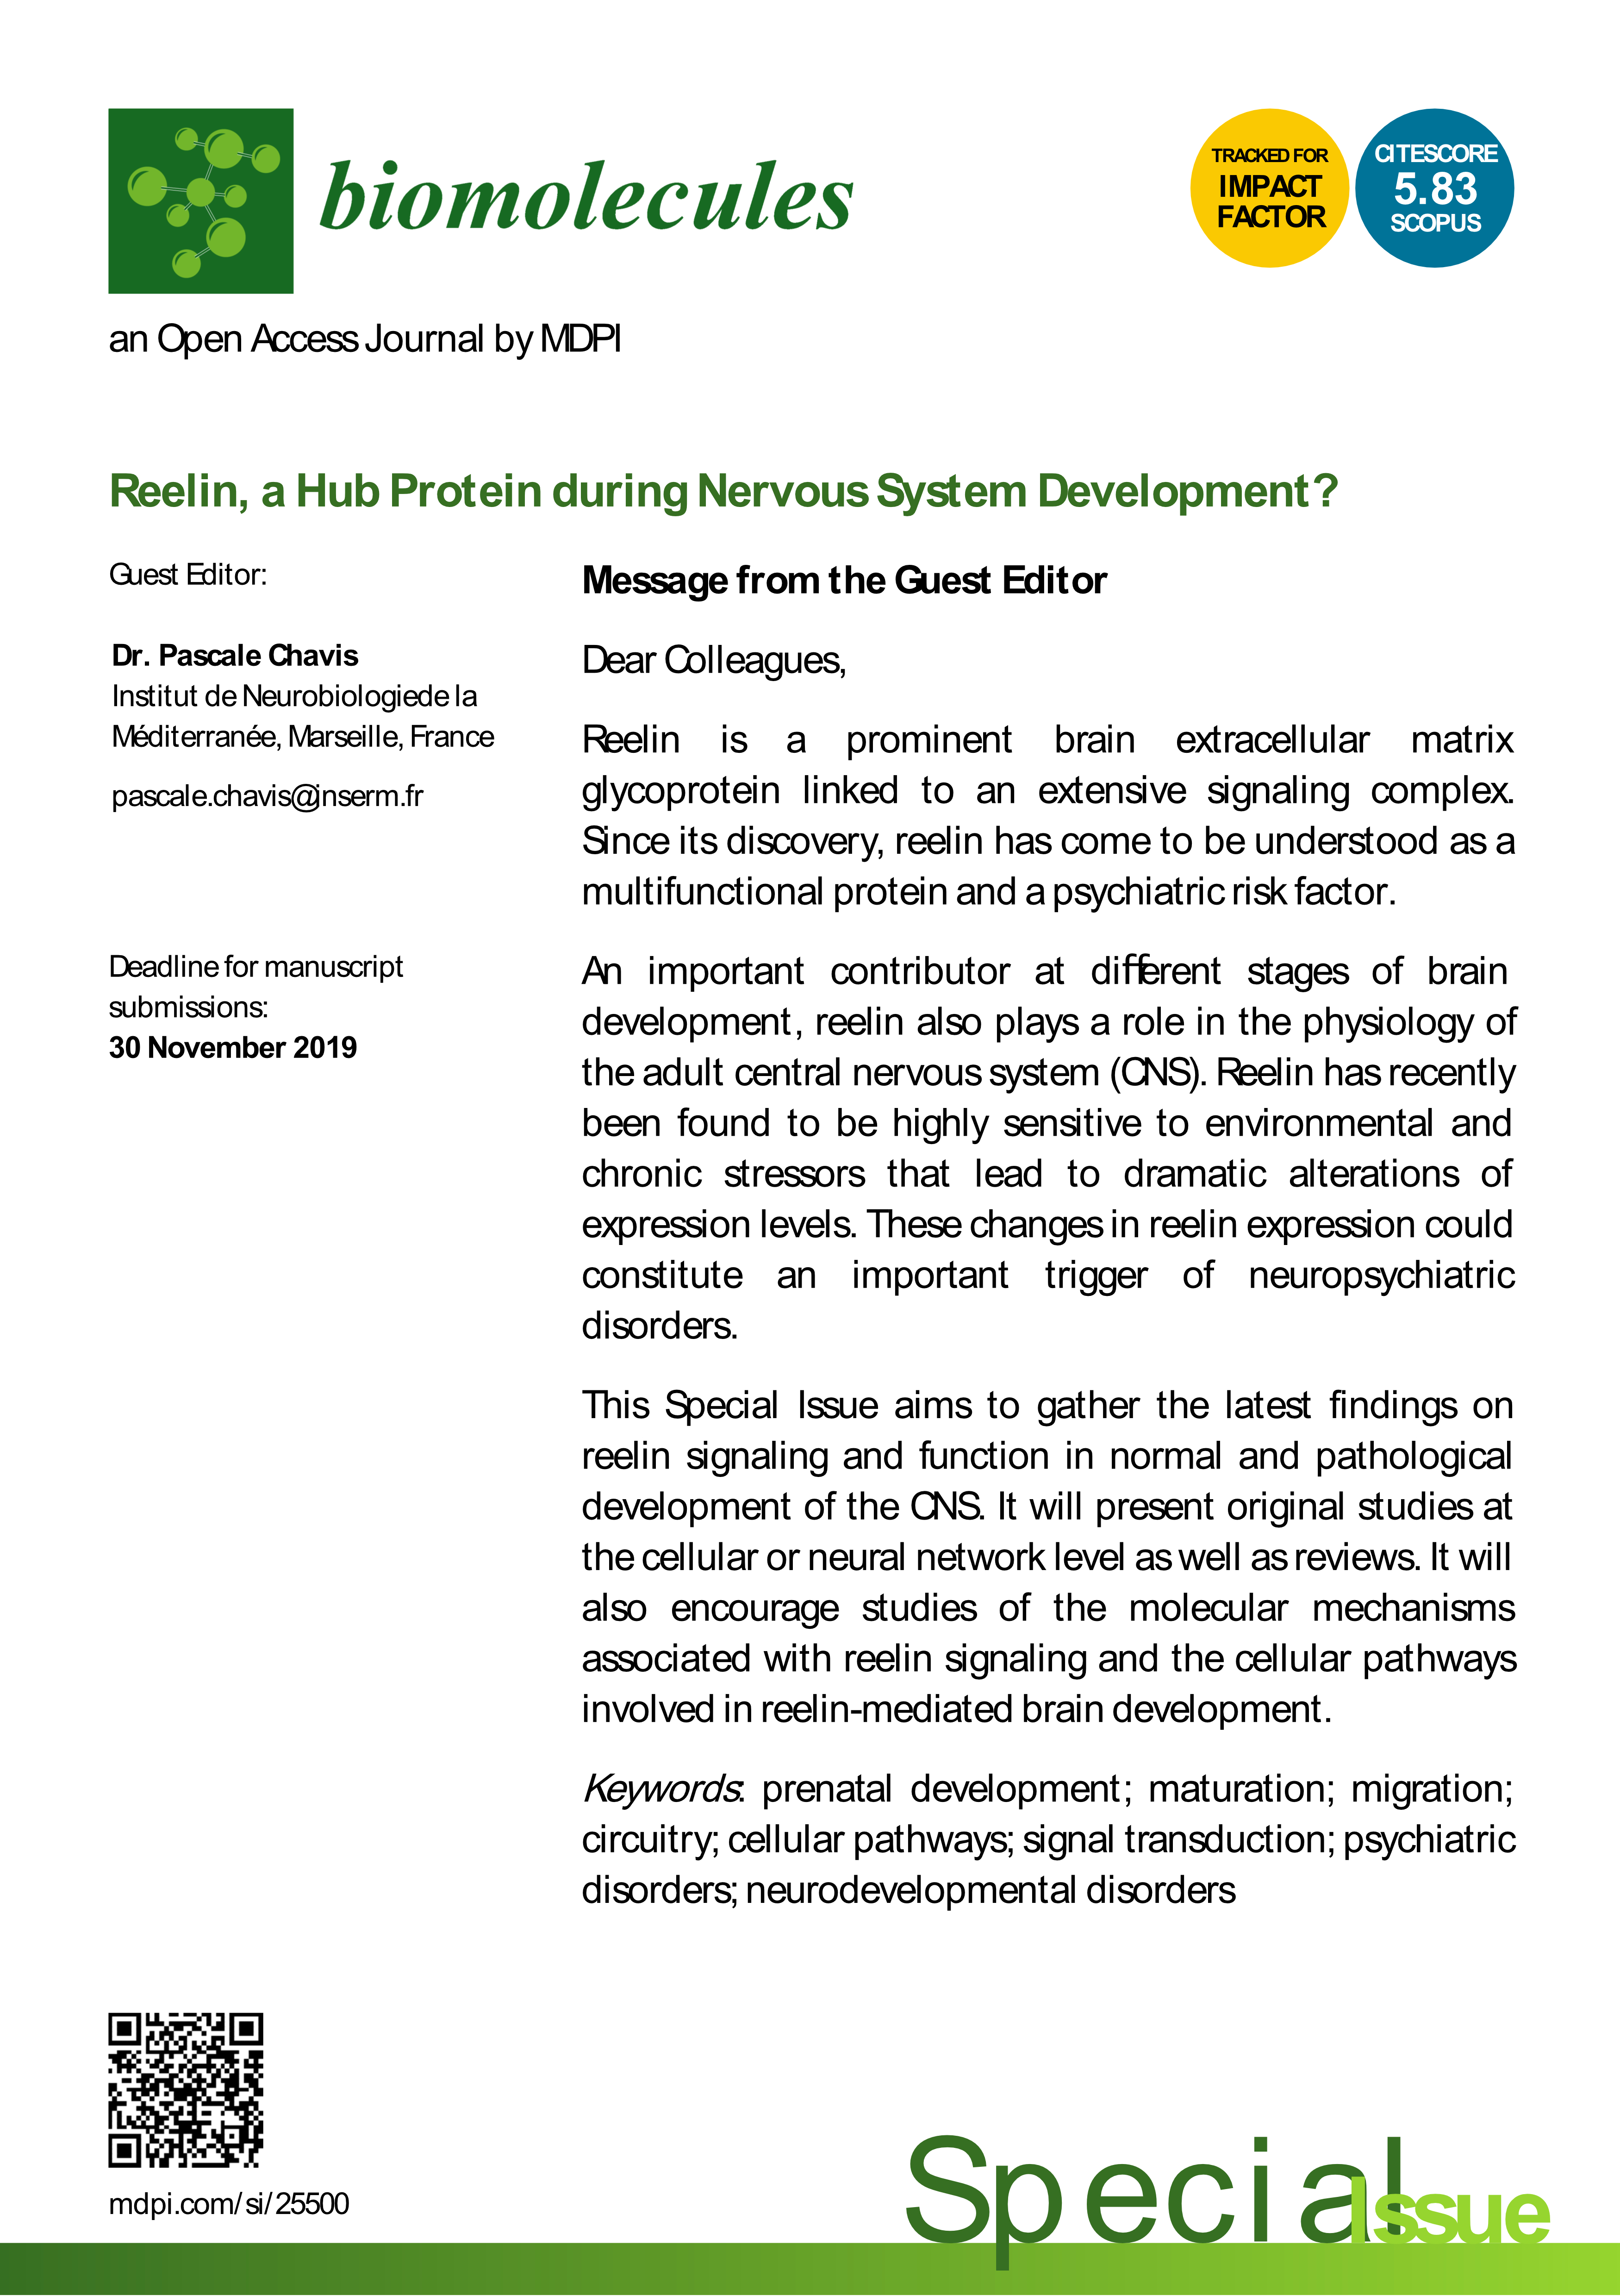 flyer_reelin_nervous_system_development